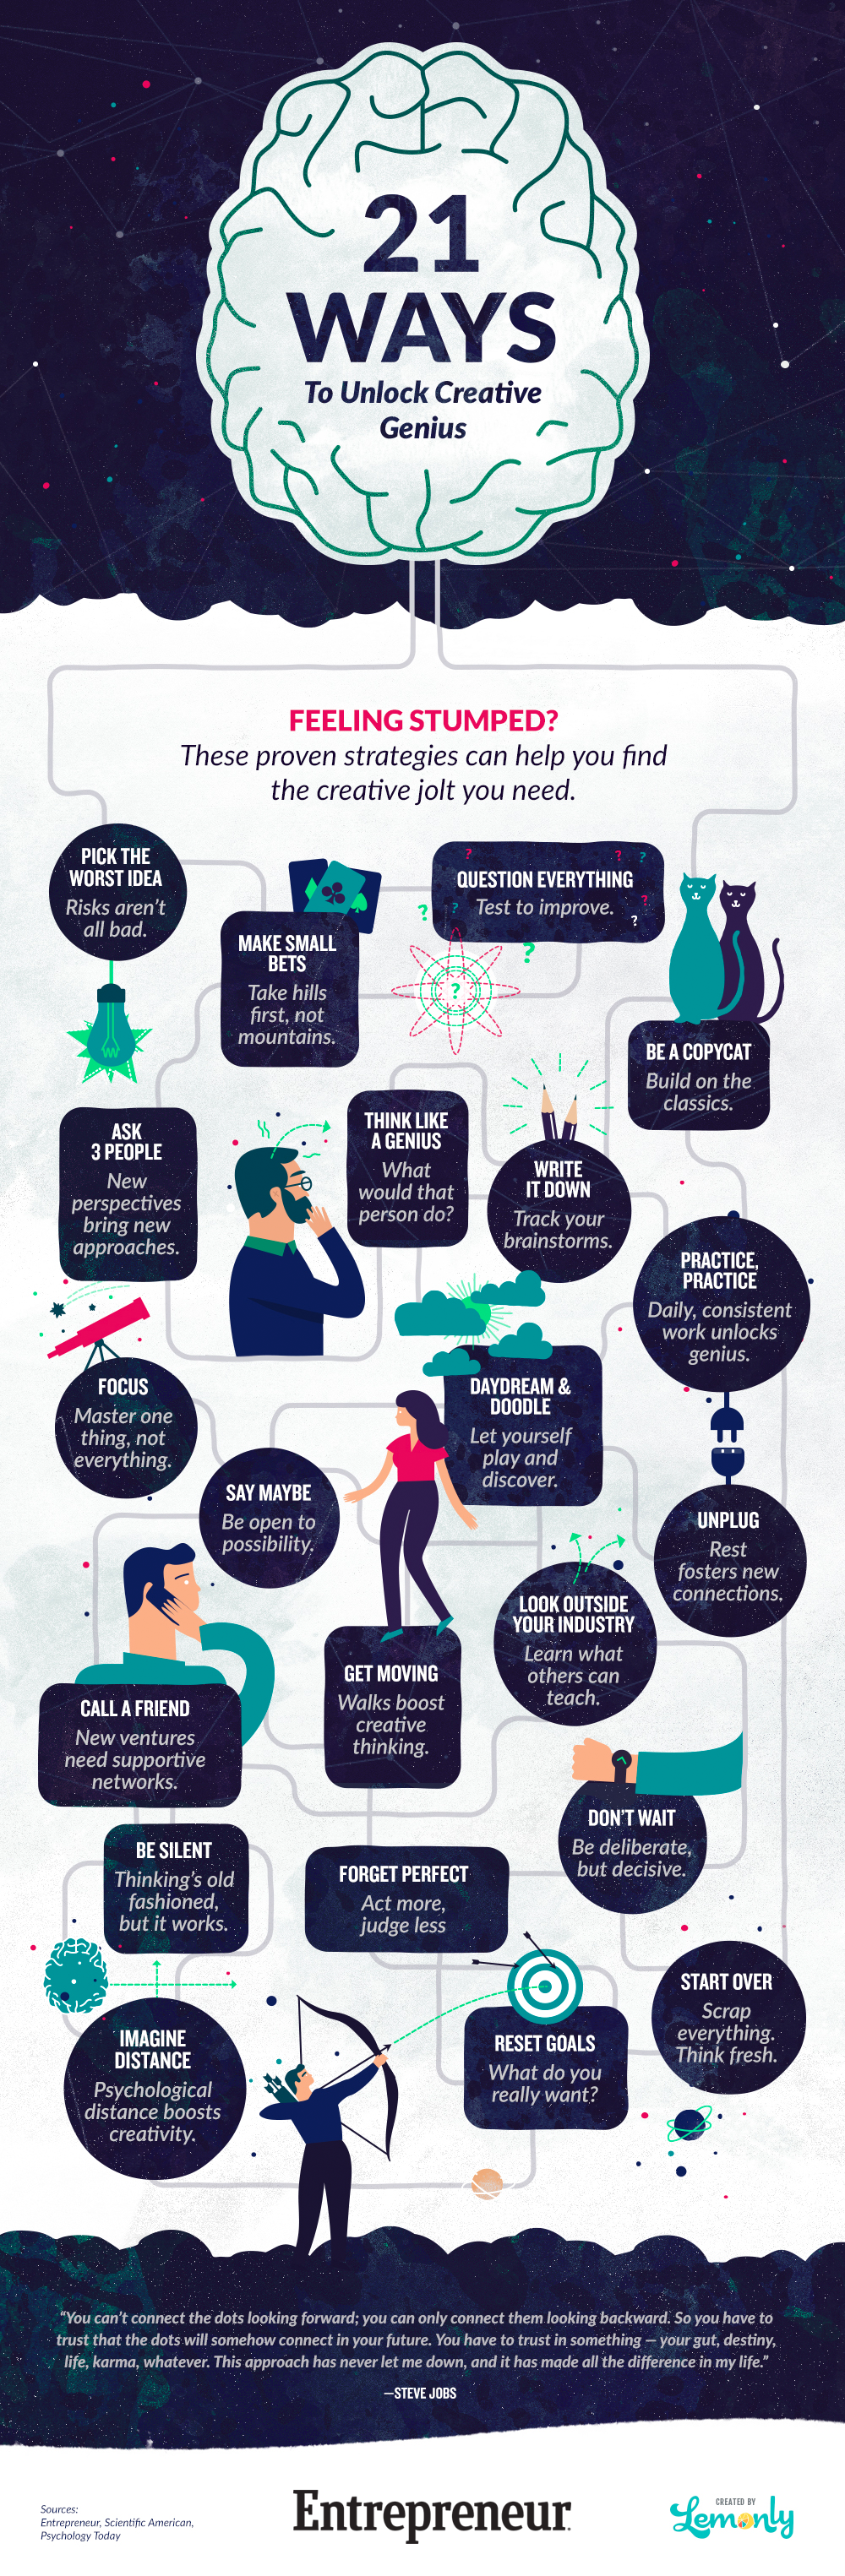 21 Ways to Be Creative Every Day